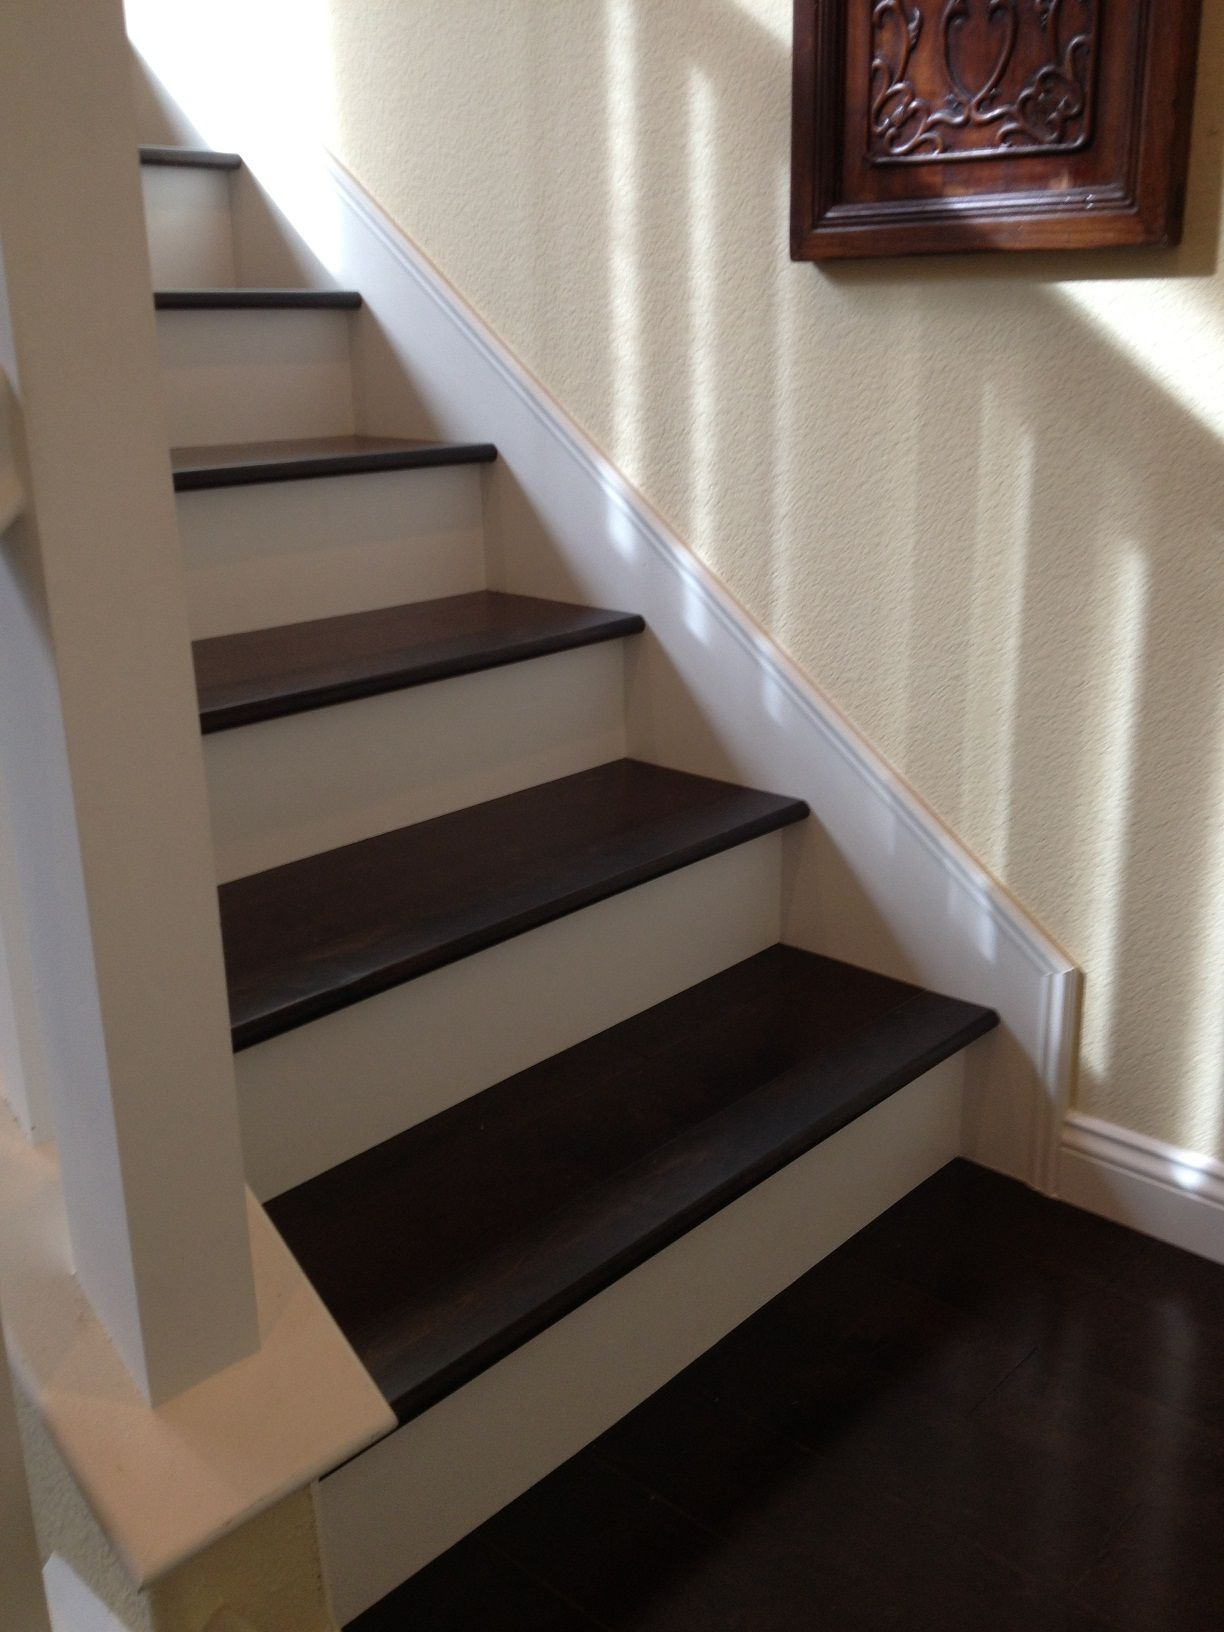 White Risers Like These On My Staircase